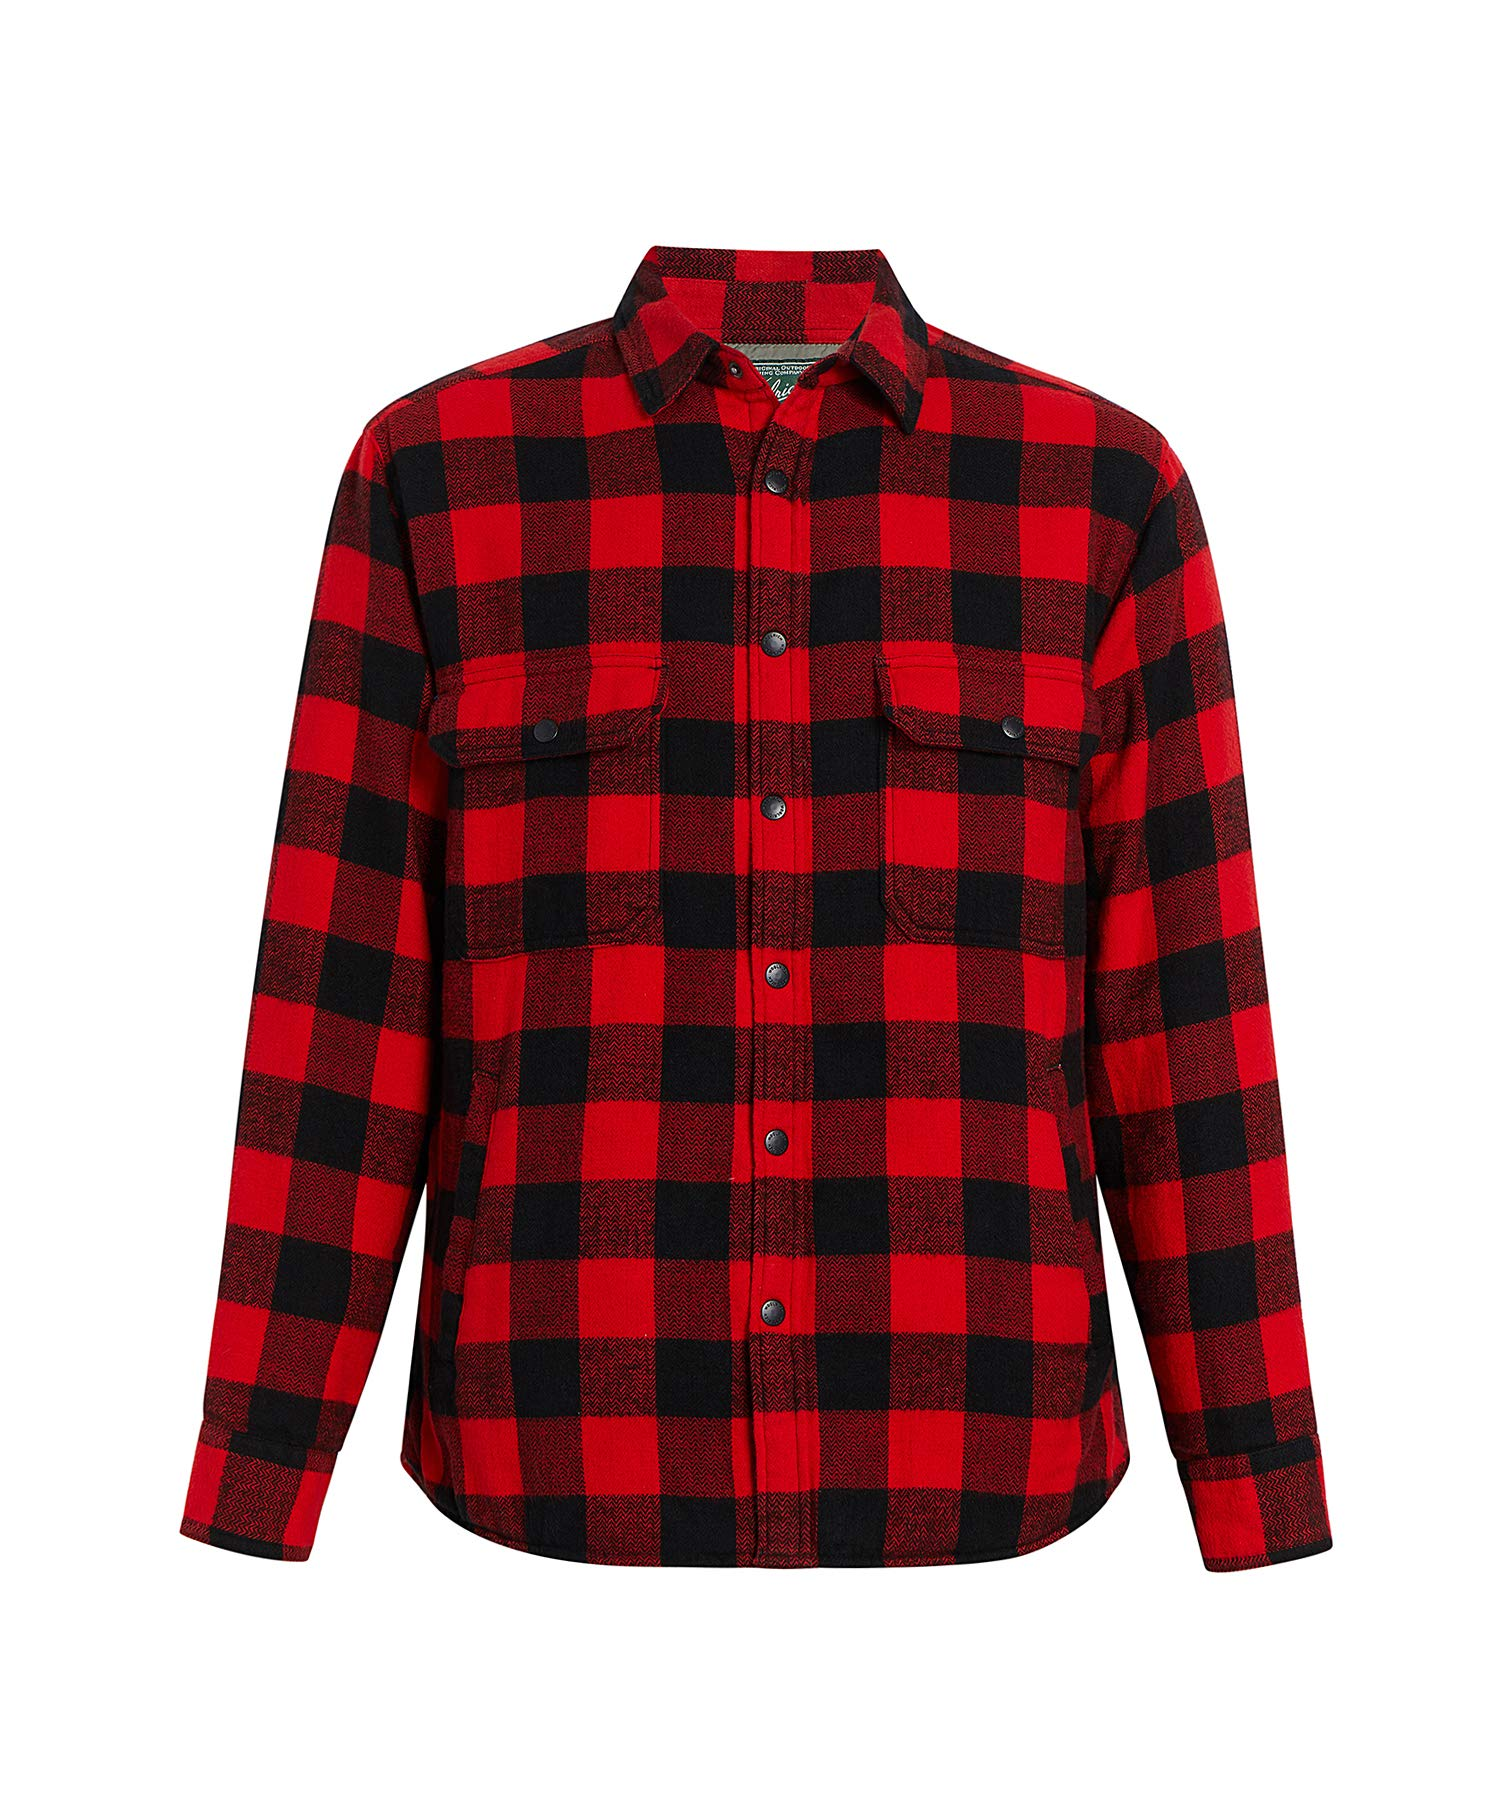 Woolrich Men's Oxbow Bend Lined Shirt Jacket, Old Red Buffalo, X-Large